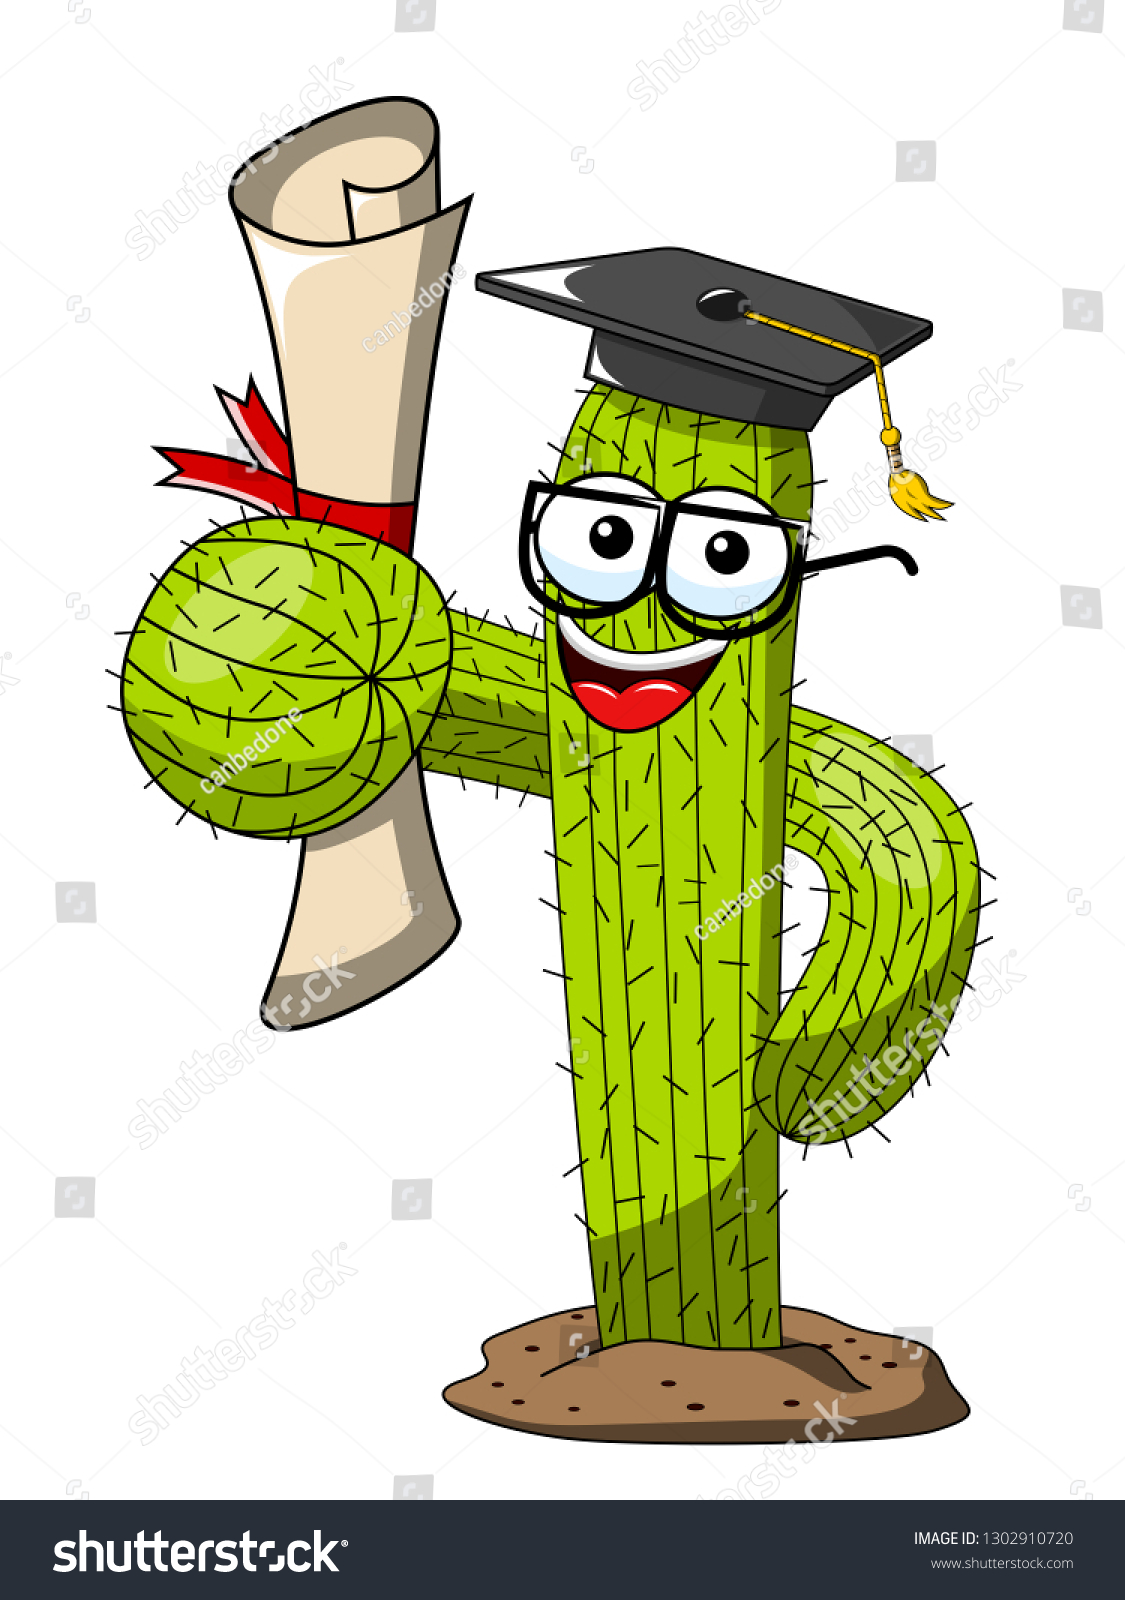 cactus cartoon funny character vector graduated stock vector royalty free 1302910720 shutterstock